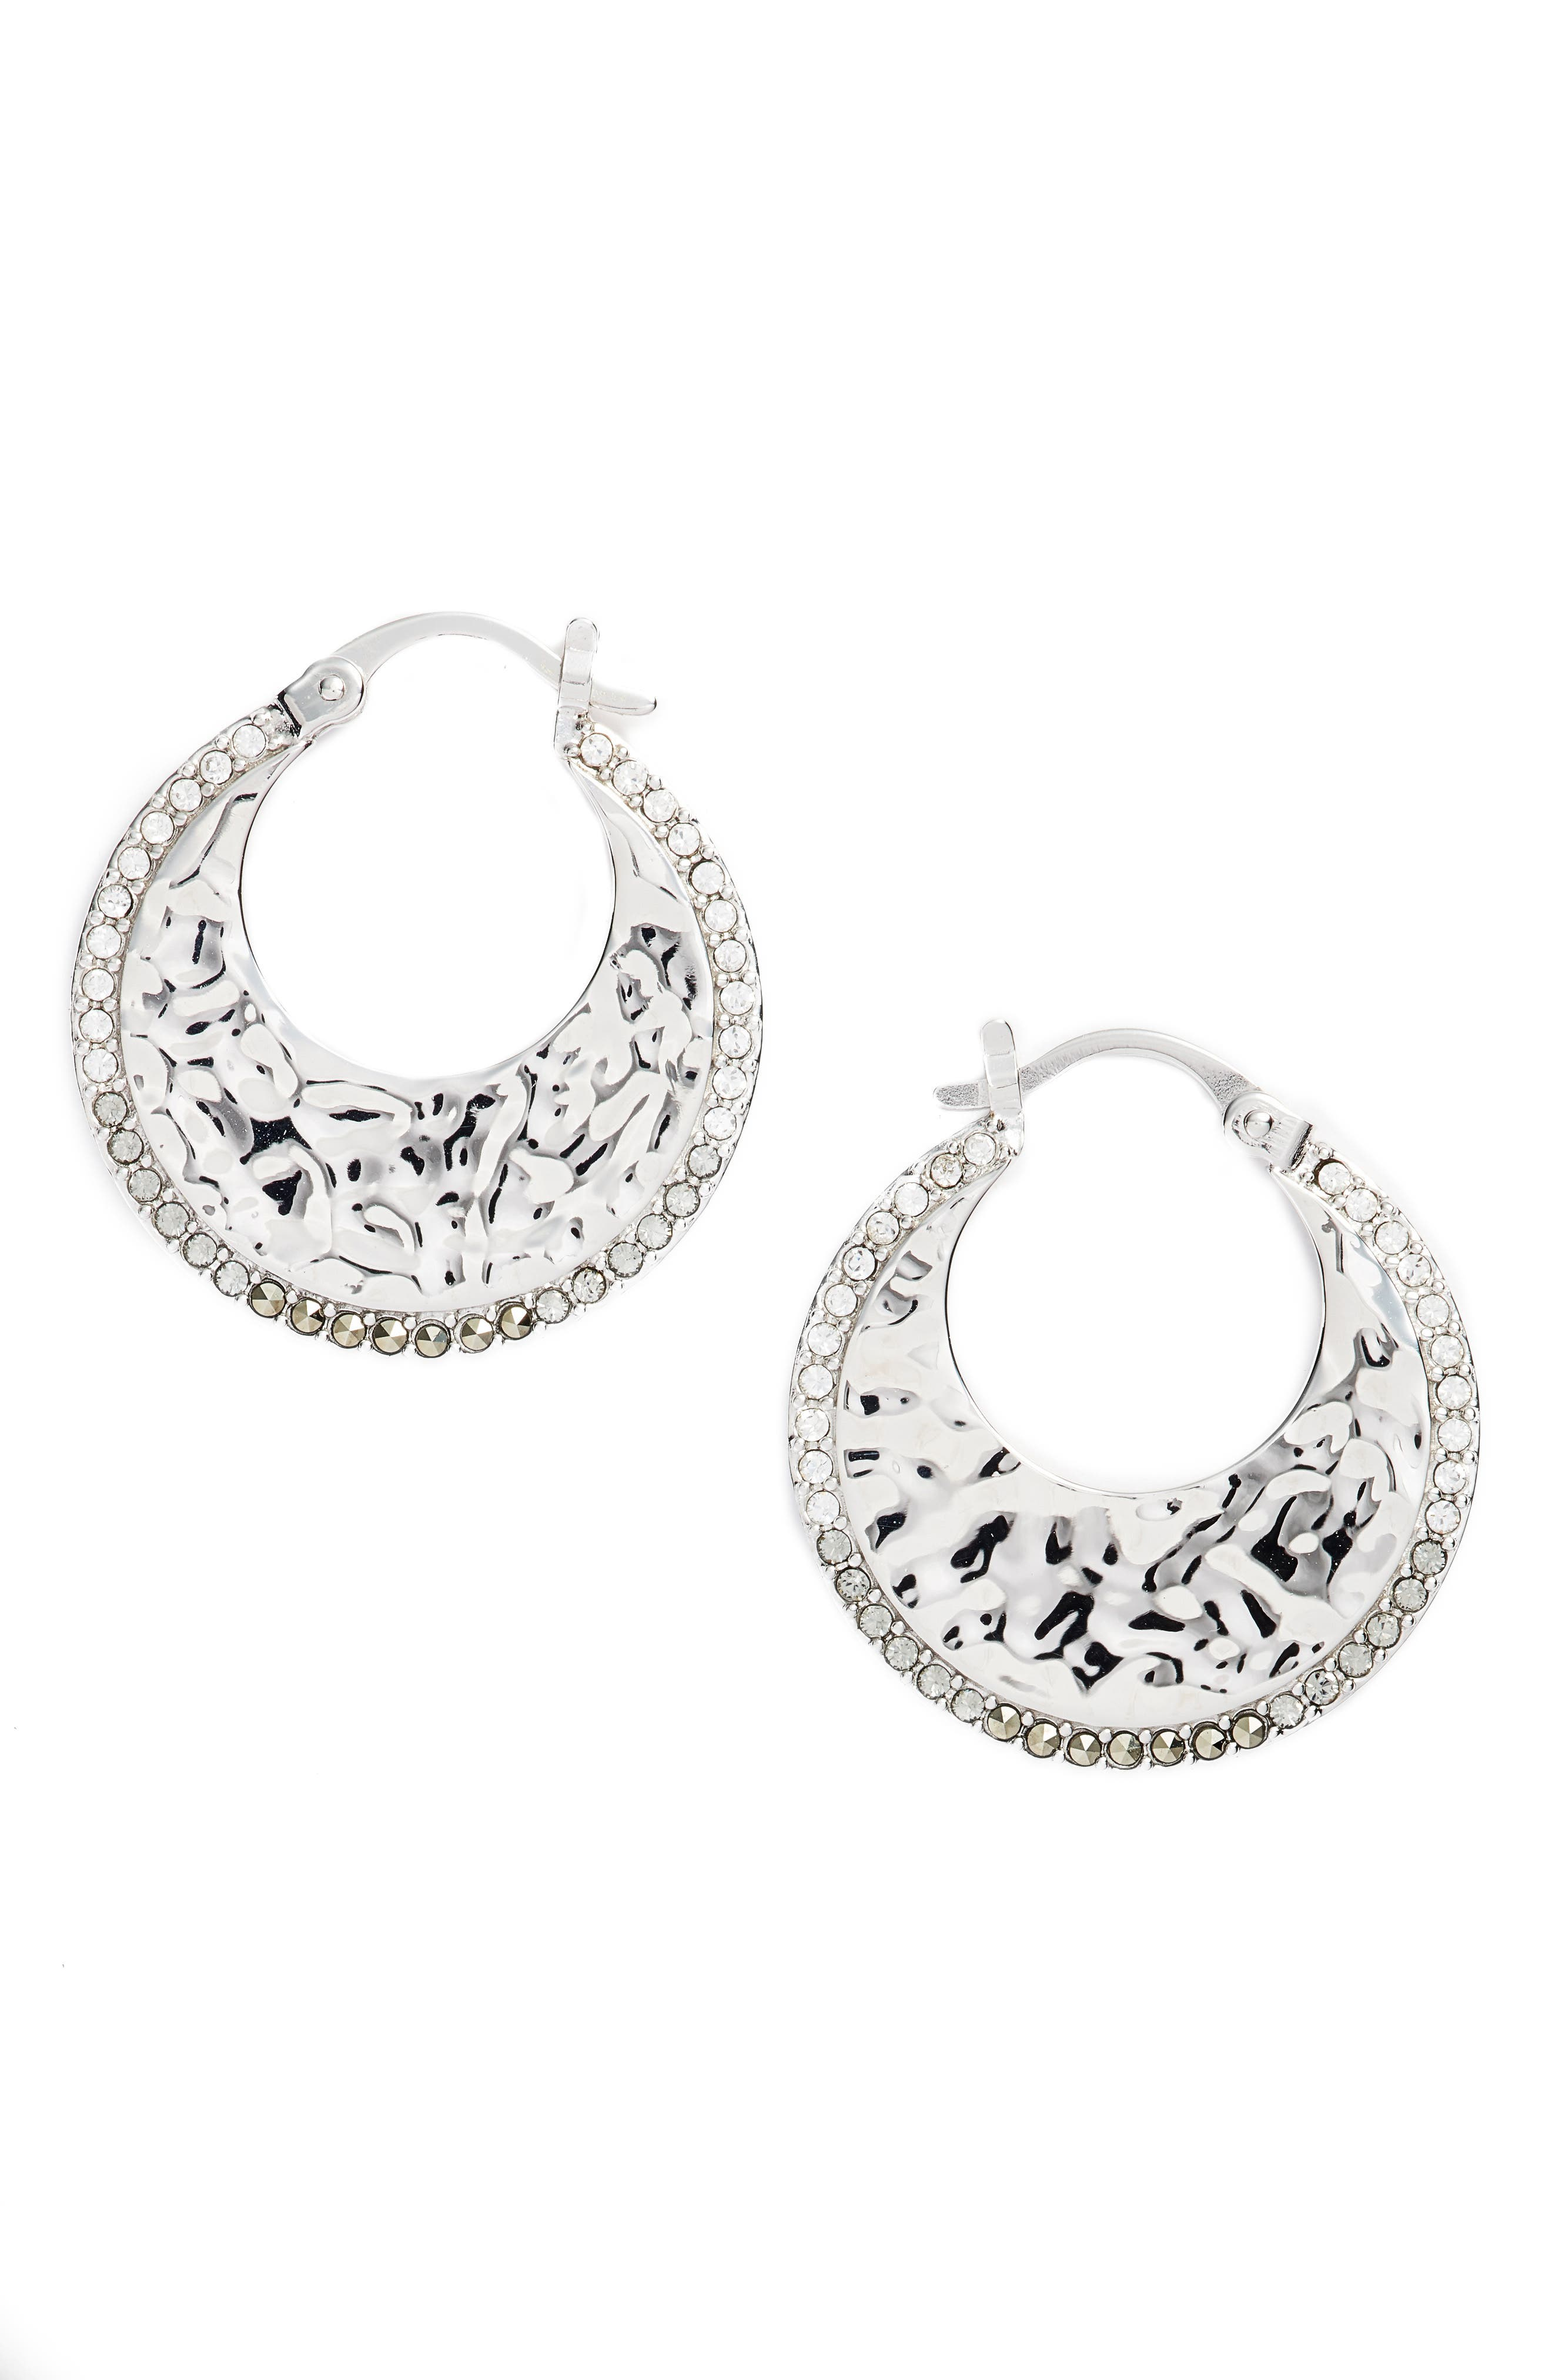 Judith Jack Small Hoop Earrings